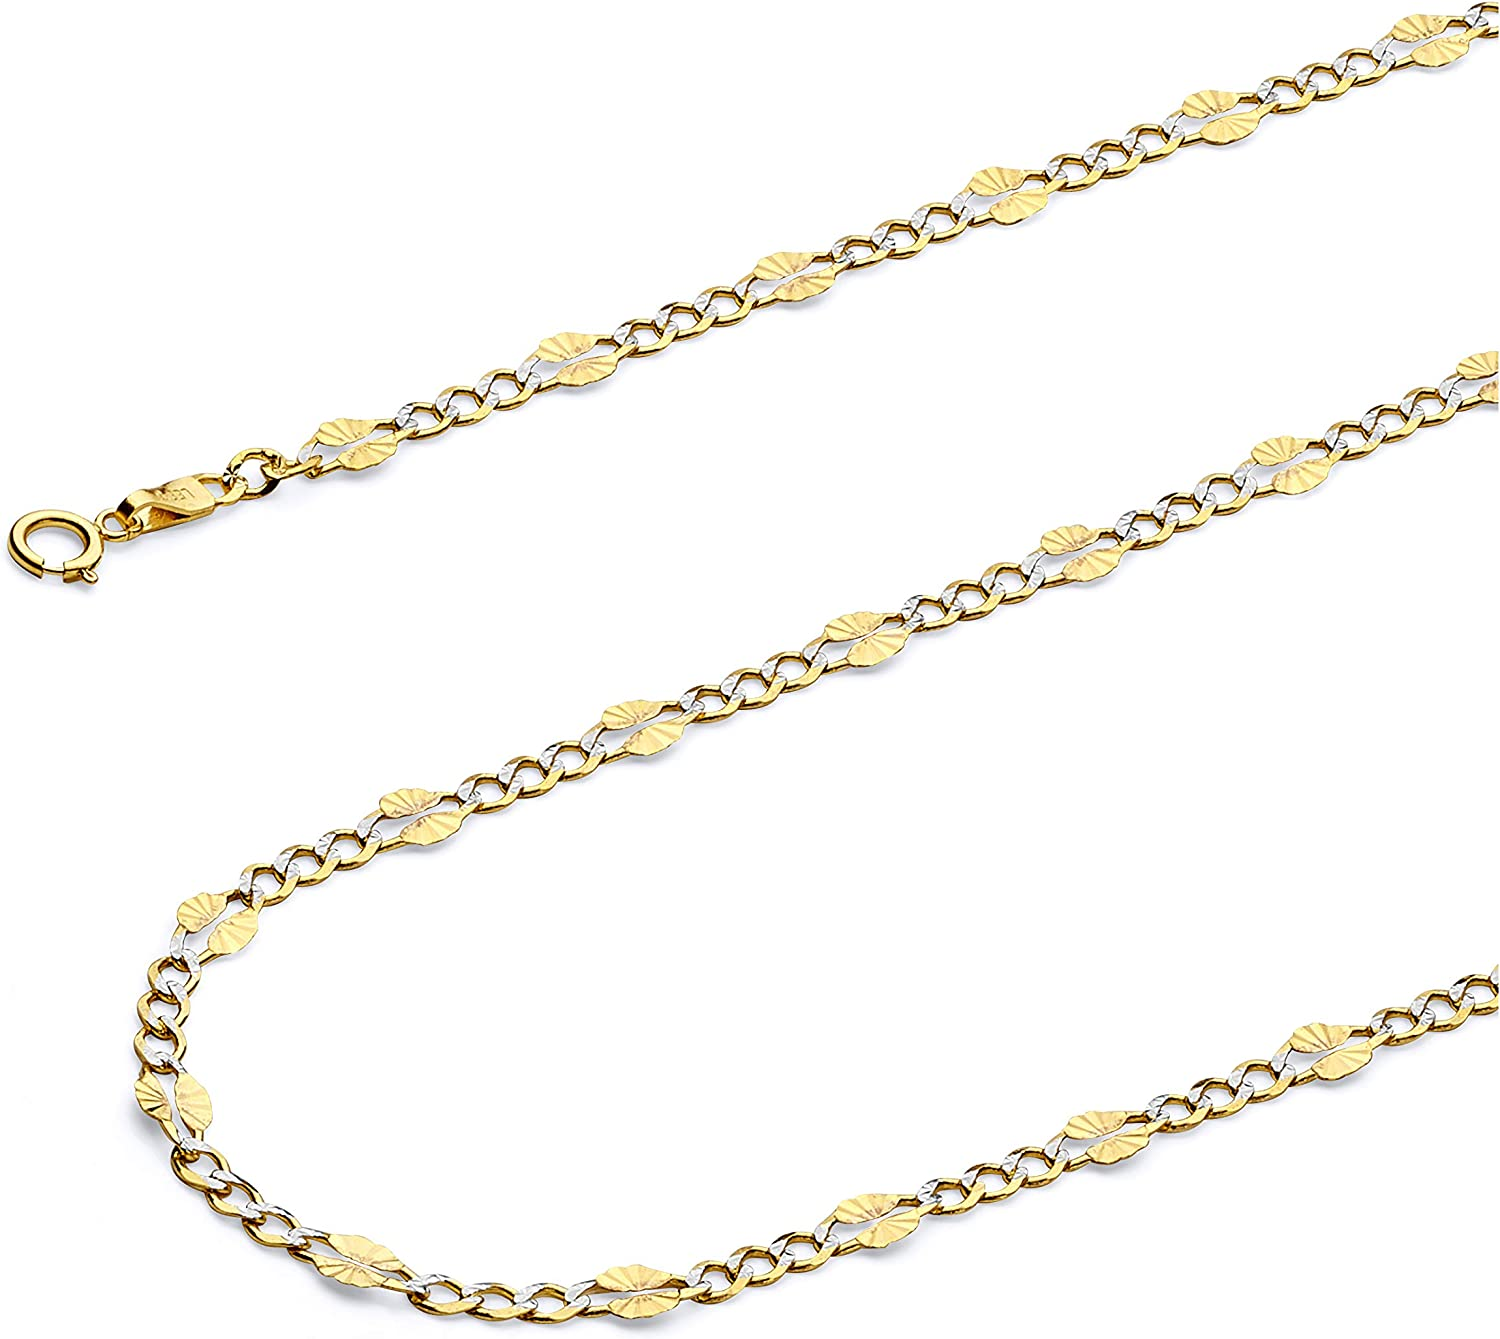 Wellingsale 14k Yellow Gold Polished Solid 3.5mm Stamp Figaro 3+1 White Pave Diamond Cut Diamond Cut Chain Necklace